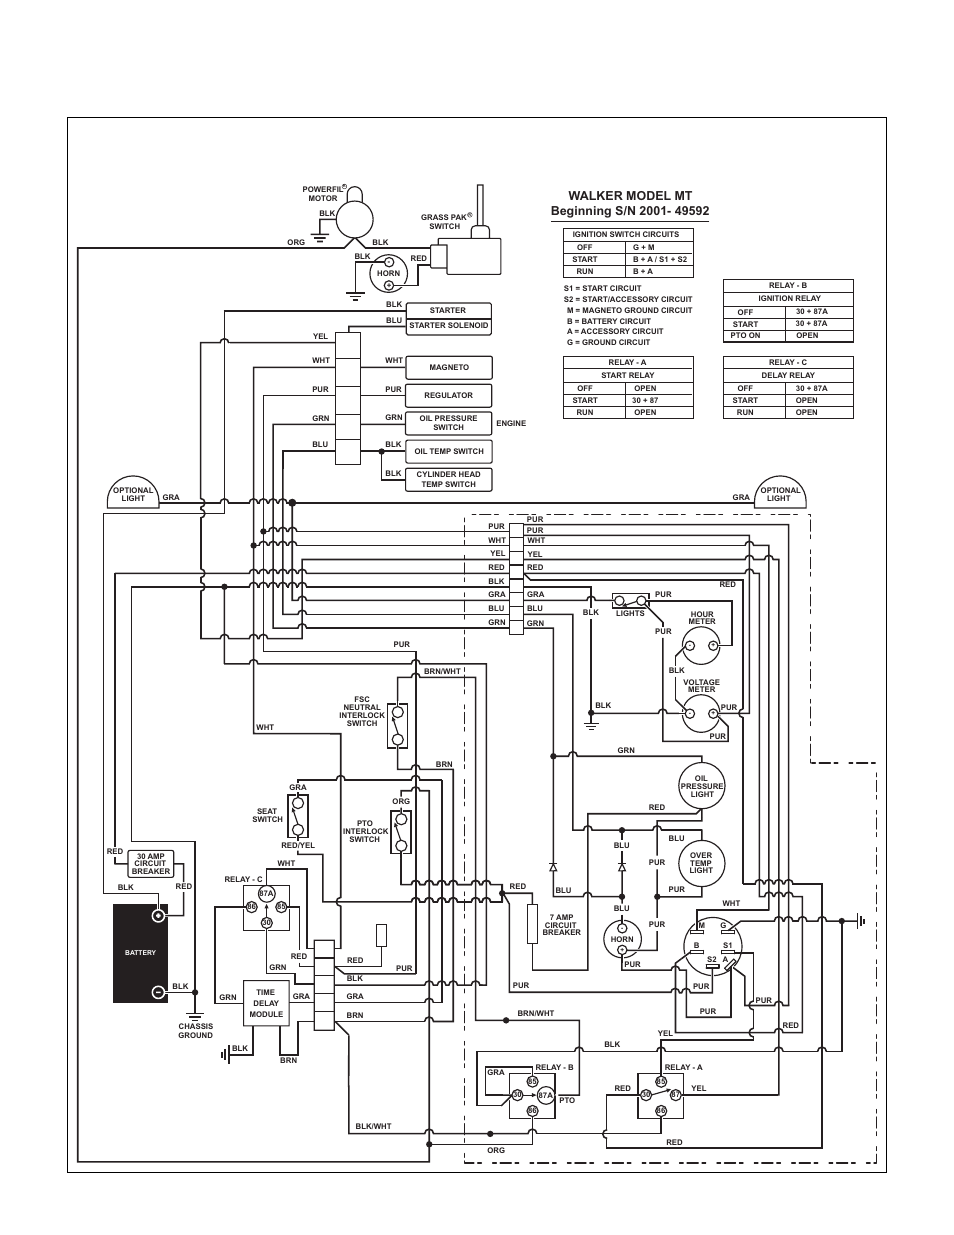 Viper Model 4115v1 Wiring Diagram